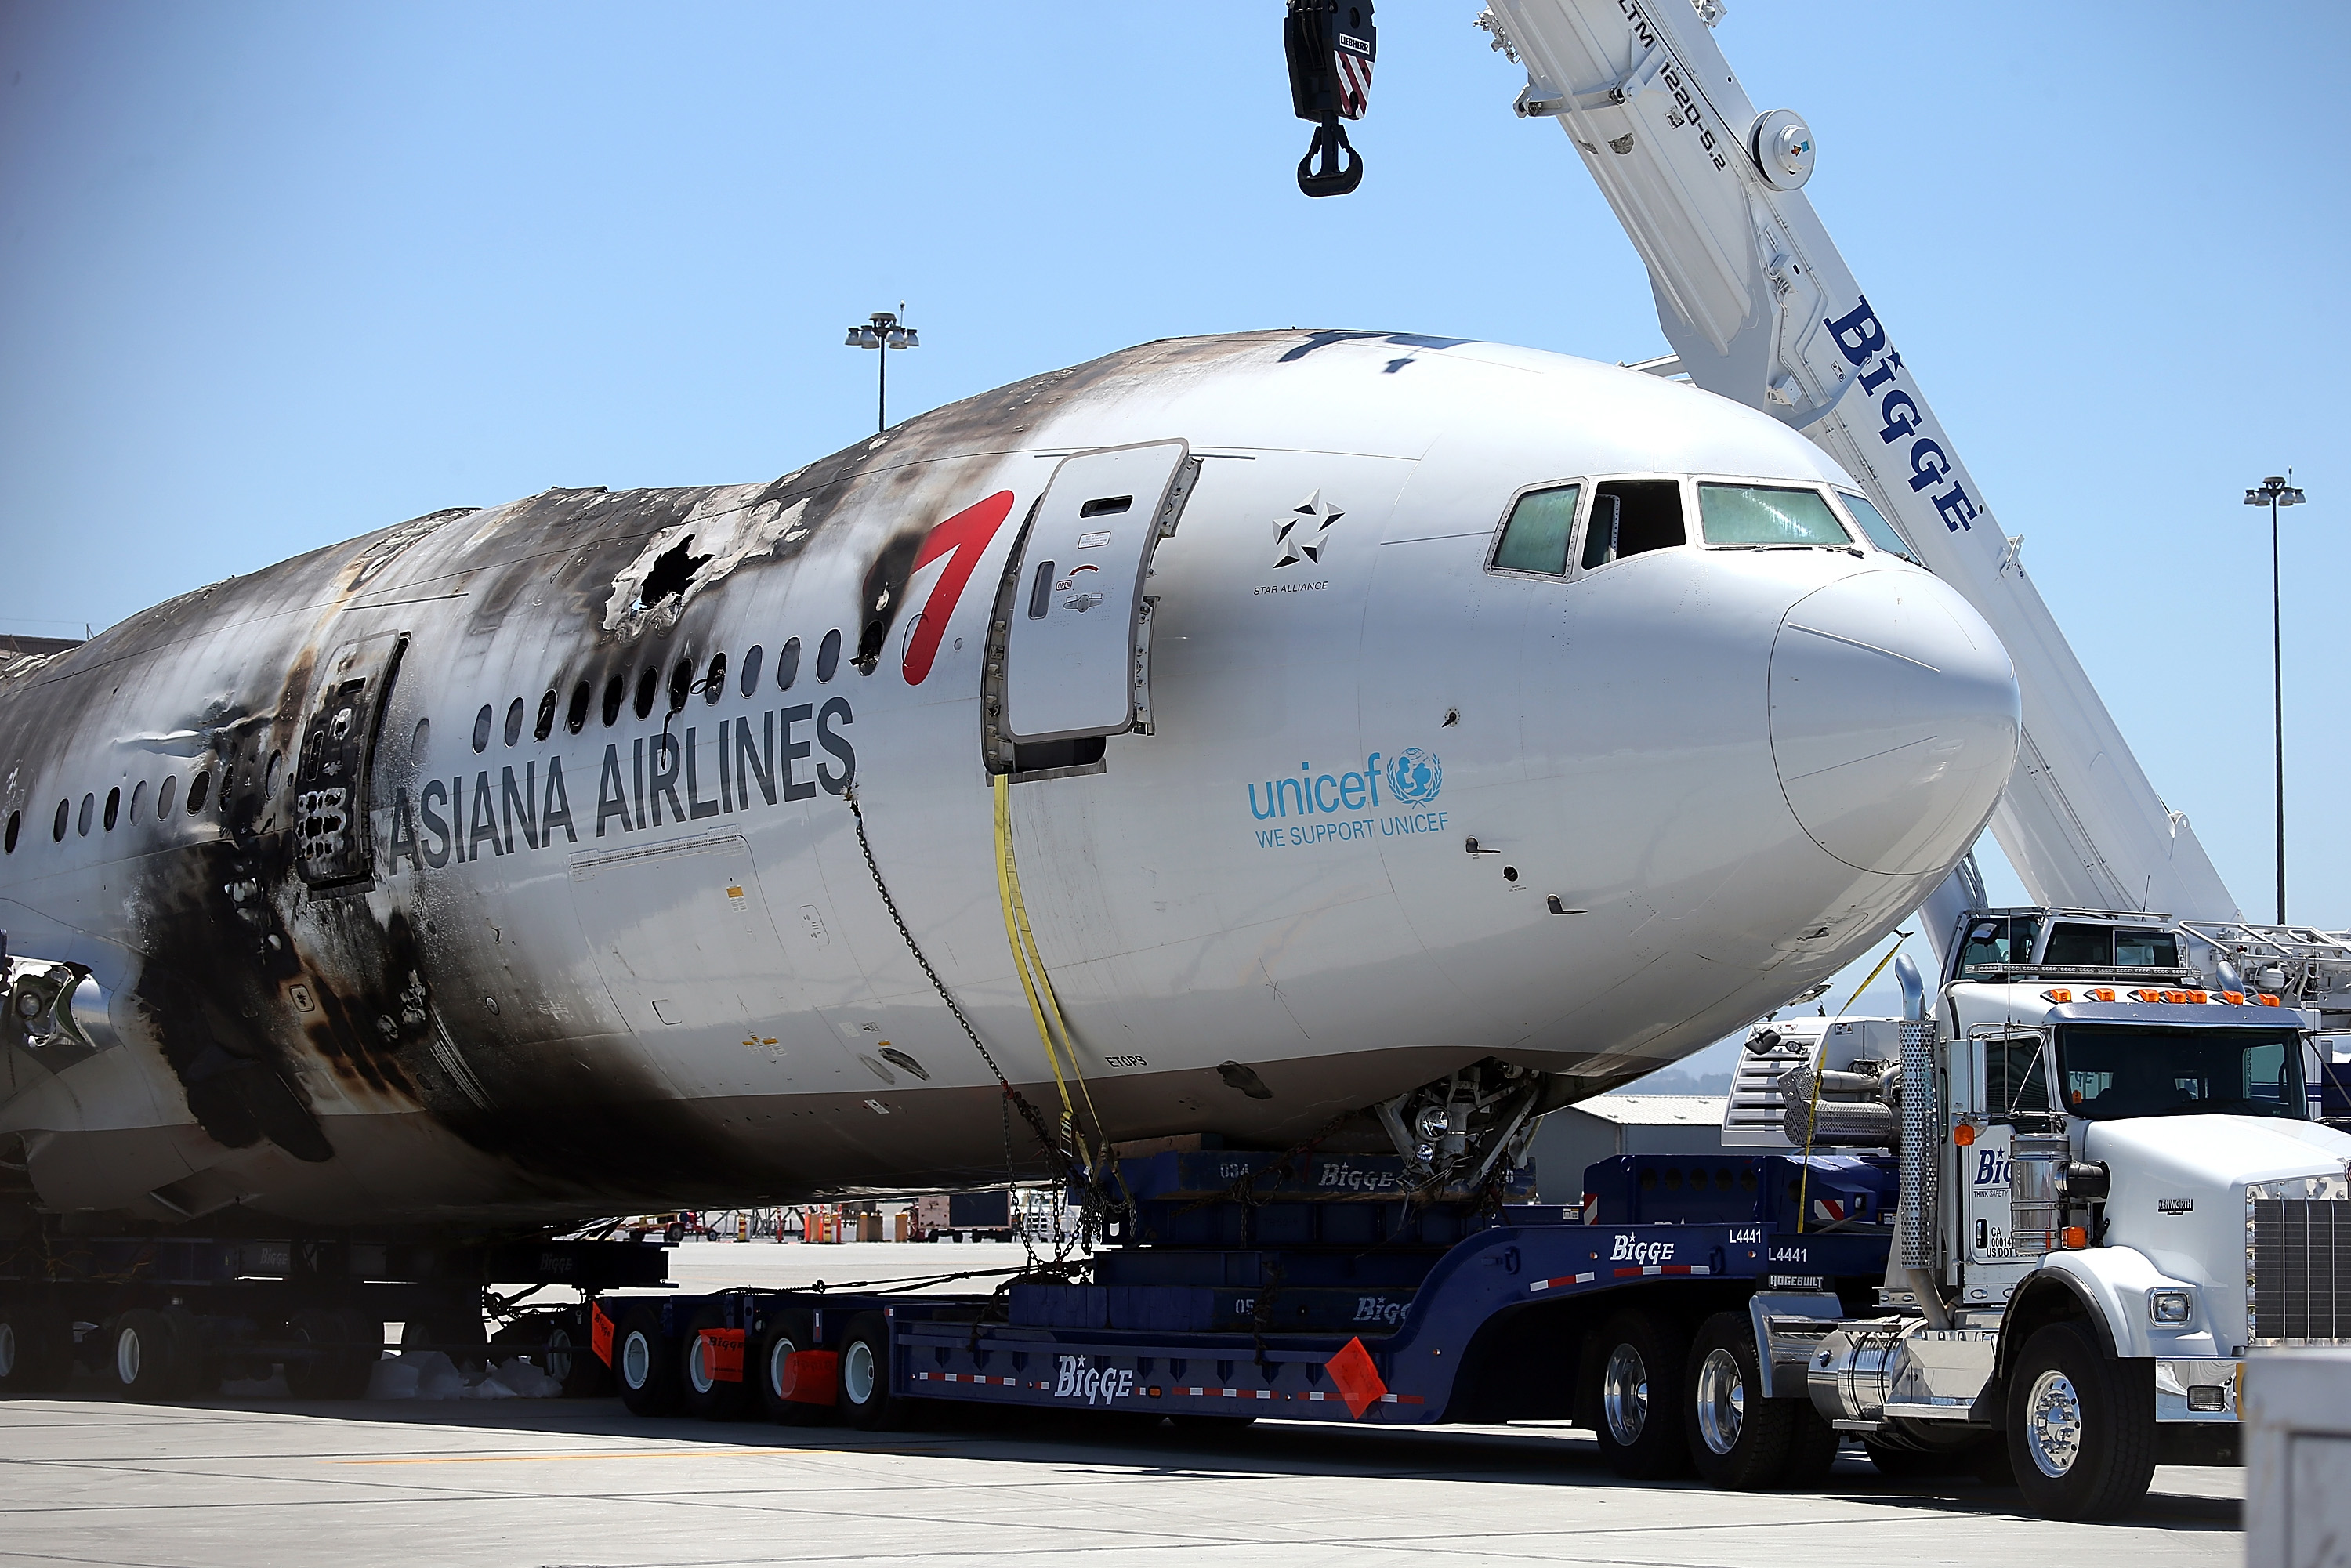 The wrecked fuselage of Asiana Airlines flght 214 sits in a storage area at San Francisco International Airport on July 12, 2013 in San Francisco, Ca.